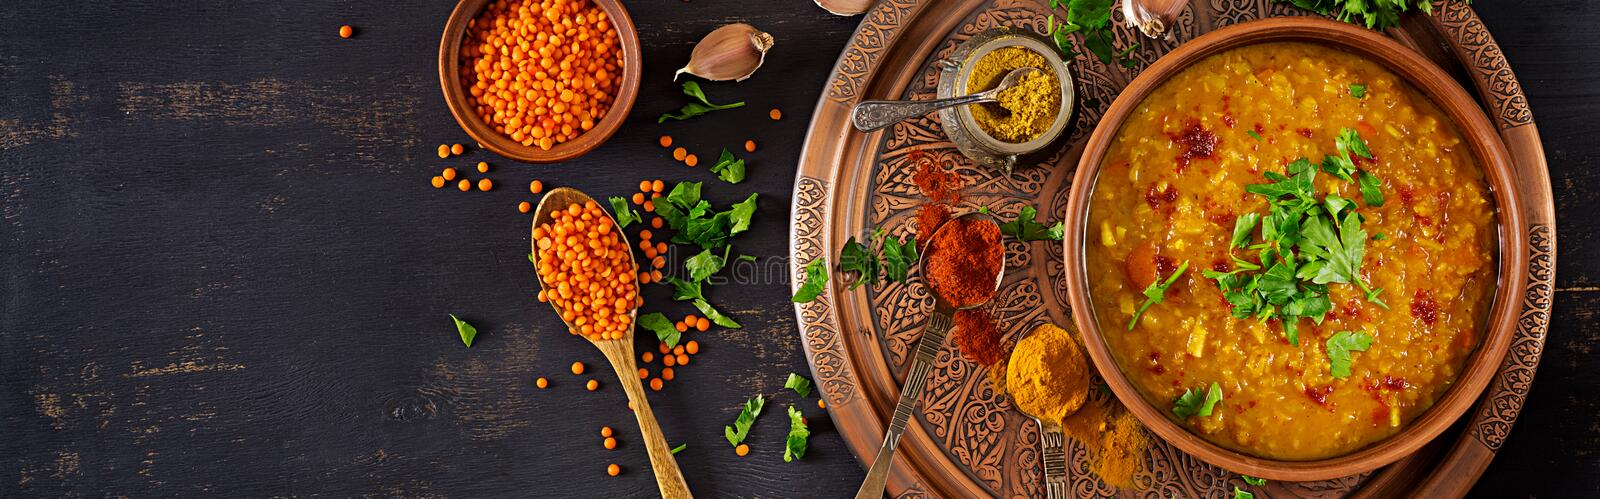 Traditional Indian soup lentils. Indian Dhal spicy curry in bowl, spices, herbs royalty free stock image